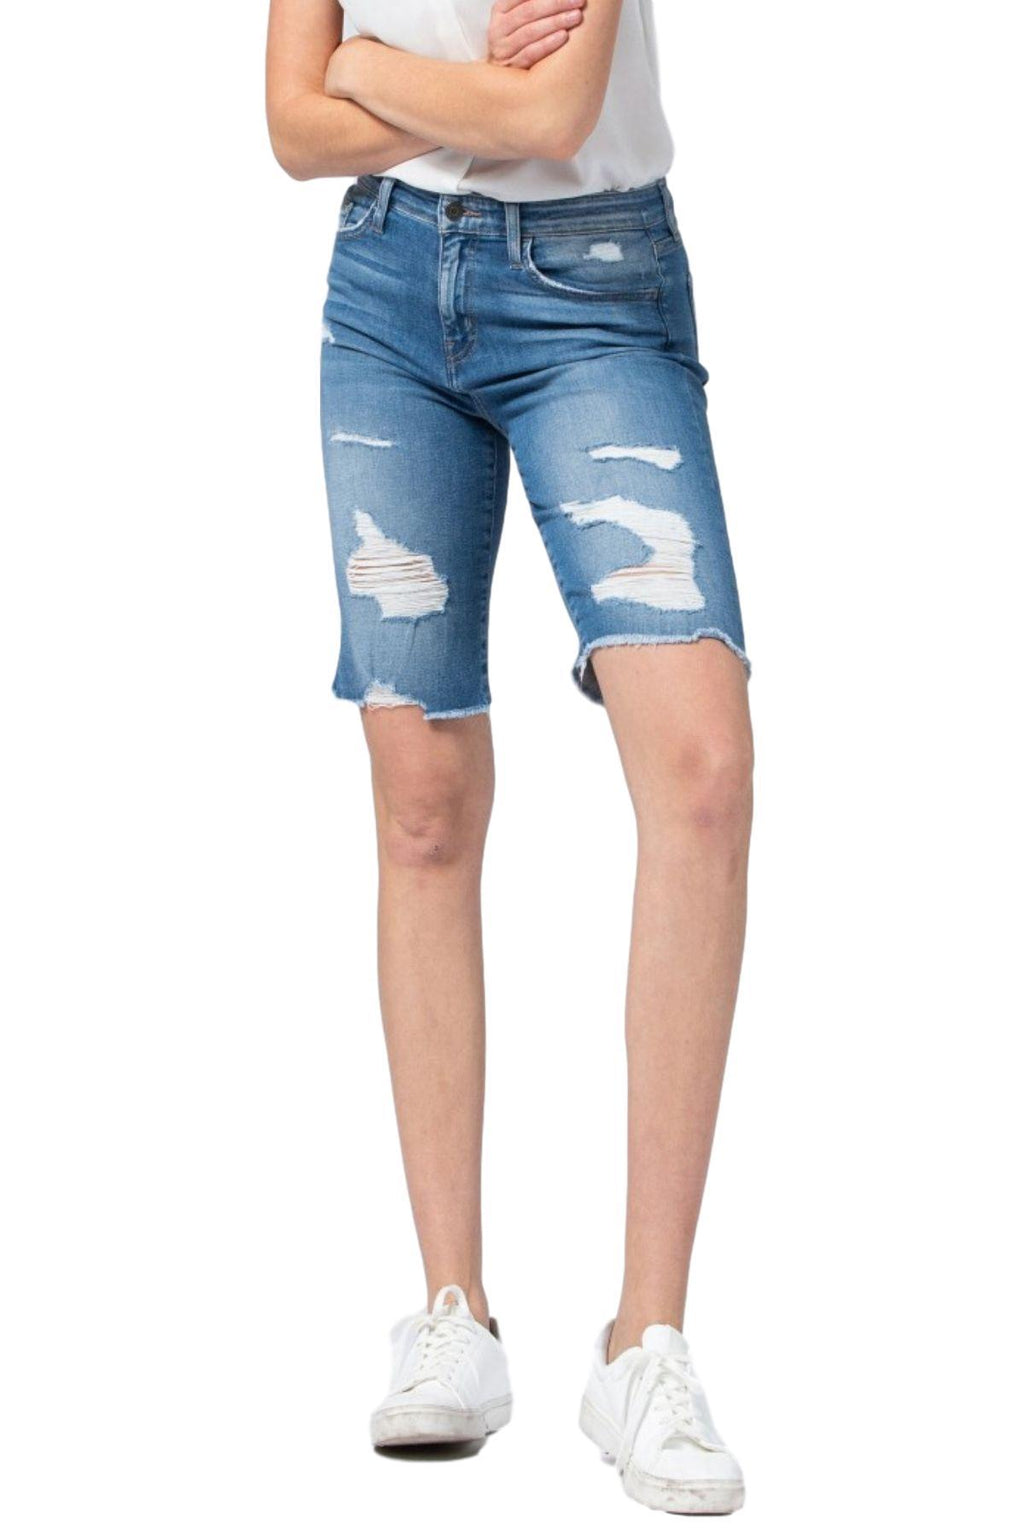 "Flying Monkey Jeans  Collection: January 2020 Style Name: Pixel Color: Distressed Medium Wash Rise: High Rise, 10"" Front Rise Cut: Bermudas, 13"" Inseam Material: 93% COTTON, 5% POLYESTER(T400), 2% LYCRA®SPANDEX Fly: Zipper  Style #: Y2880   Contact us for any additional measurements or sizing.   Sizes Compared To Women's Size 24/00 25/0 26/2 27/4 28/6 29/8 30/10  Sizes Compared To Juniors Size 24/0 25/1 26/3 27/5 28/7 29/9 30/11"